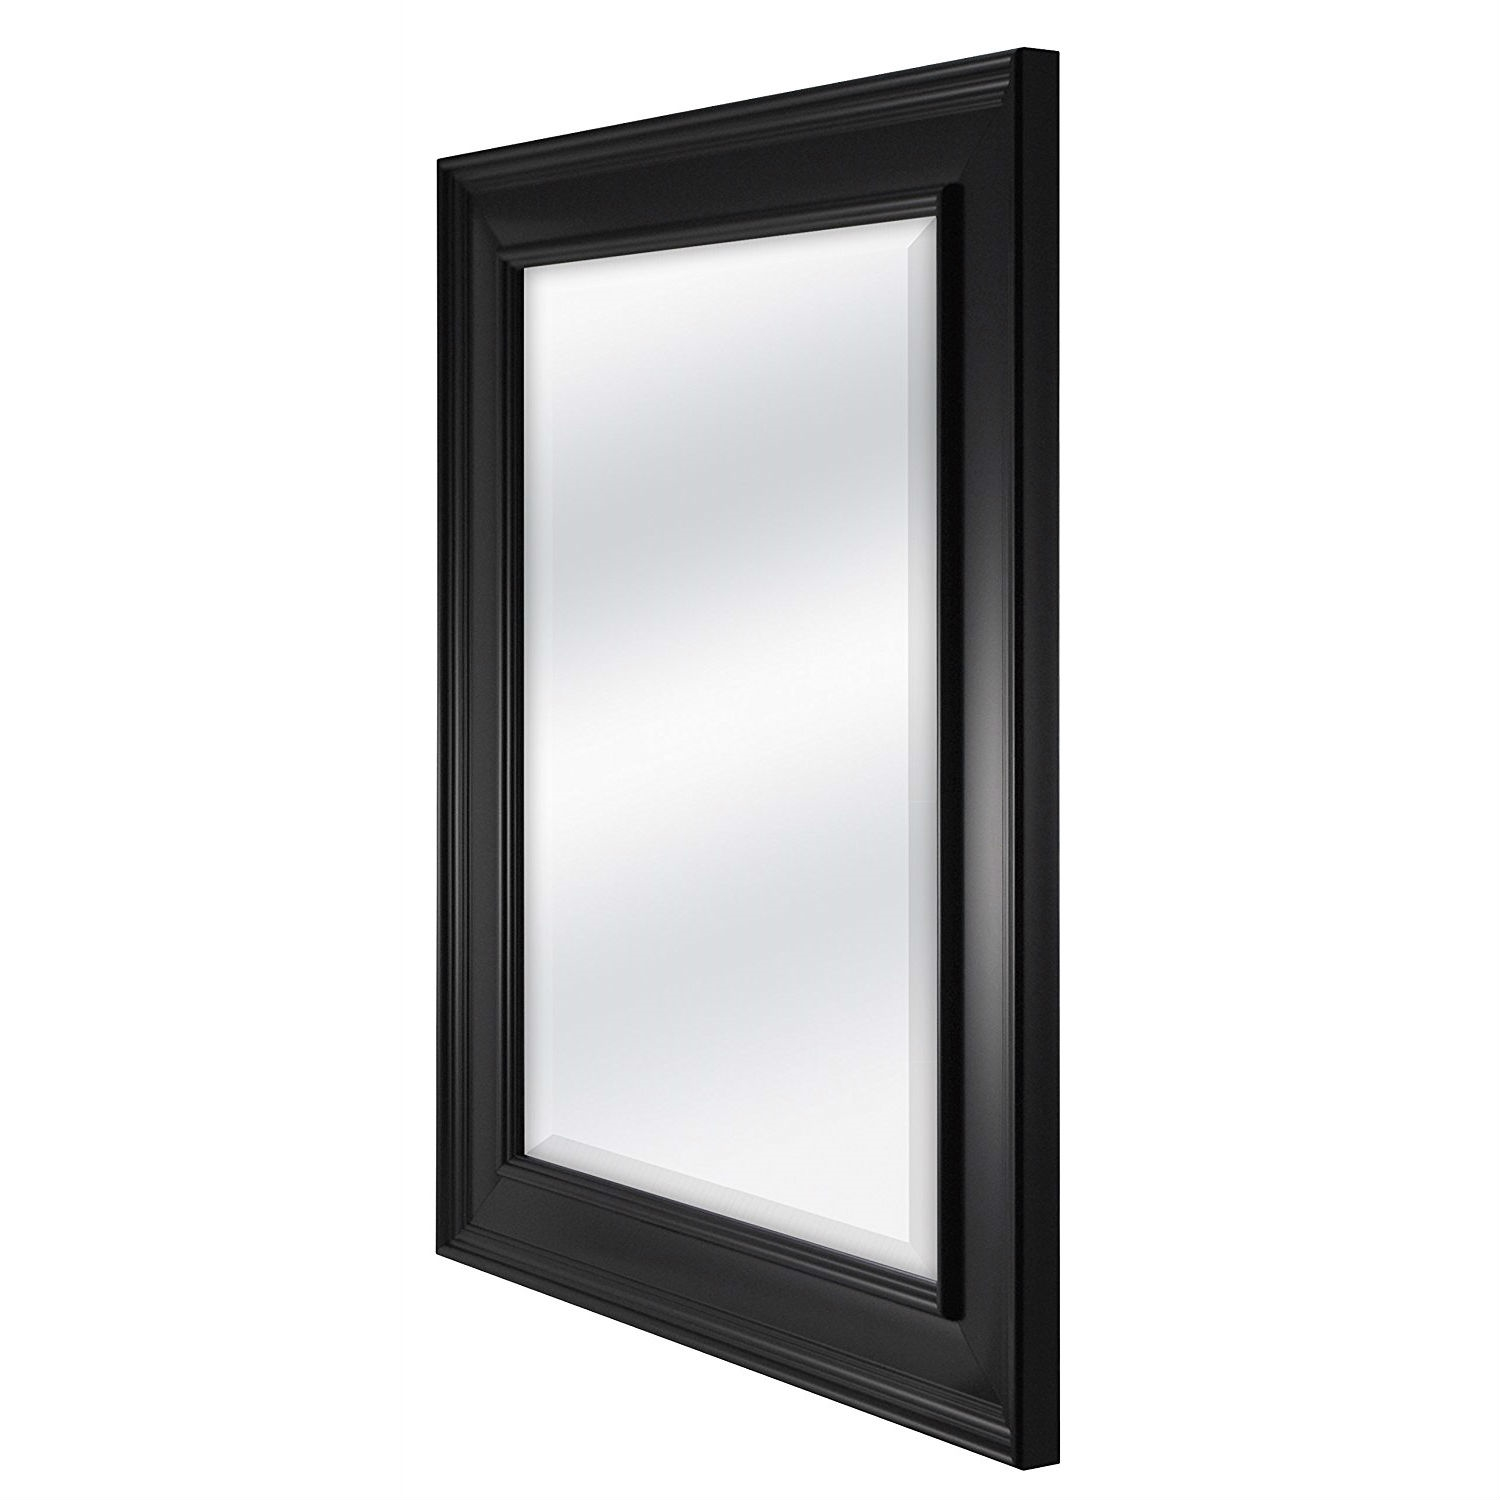 Black 27.5 x 21.5 inch Beveled Bathroom Mirror with Wall Hangers ...